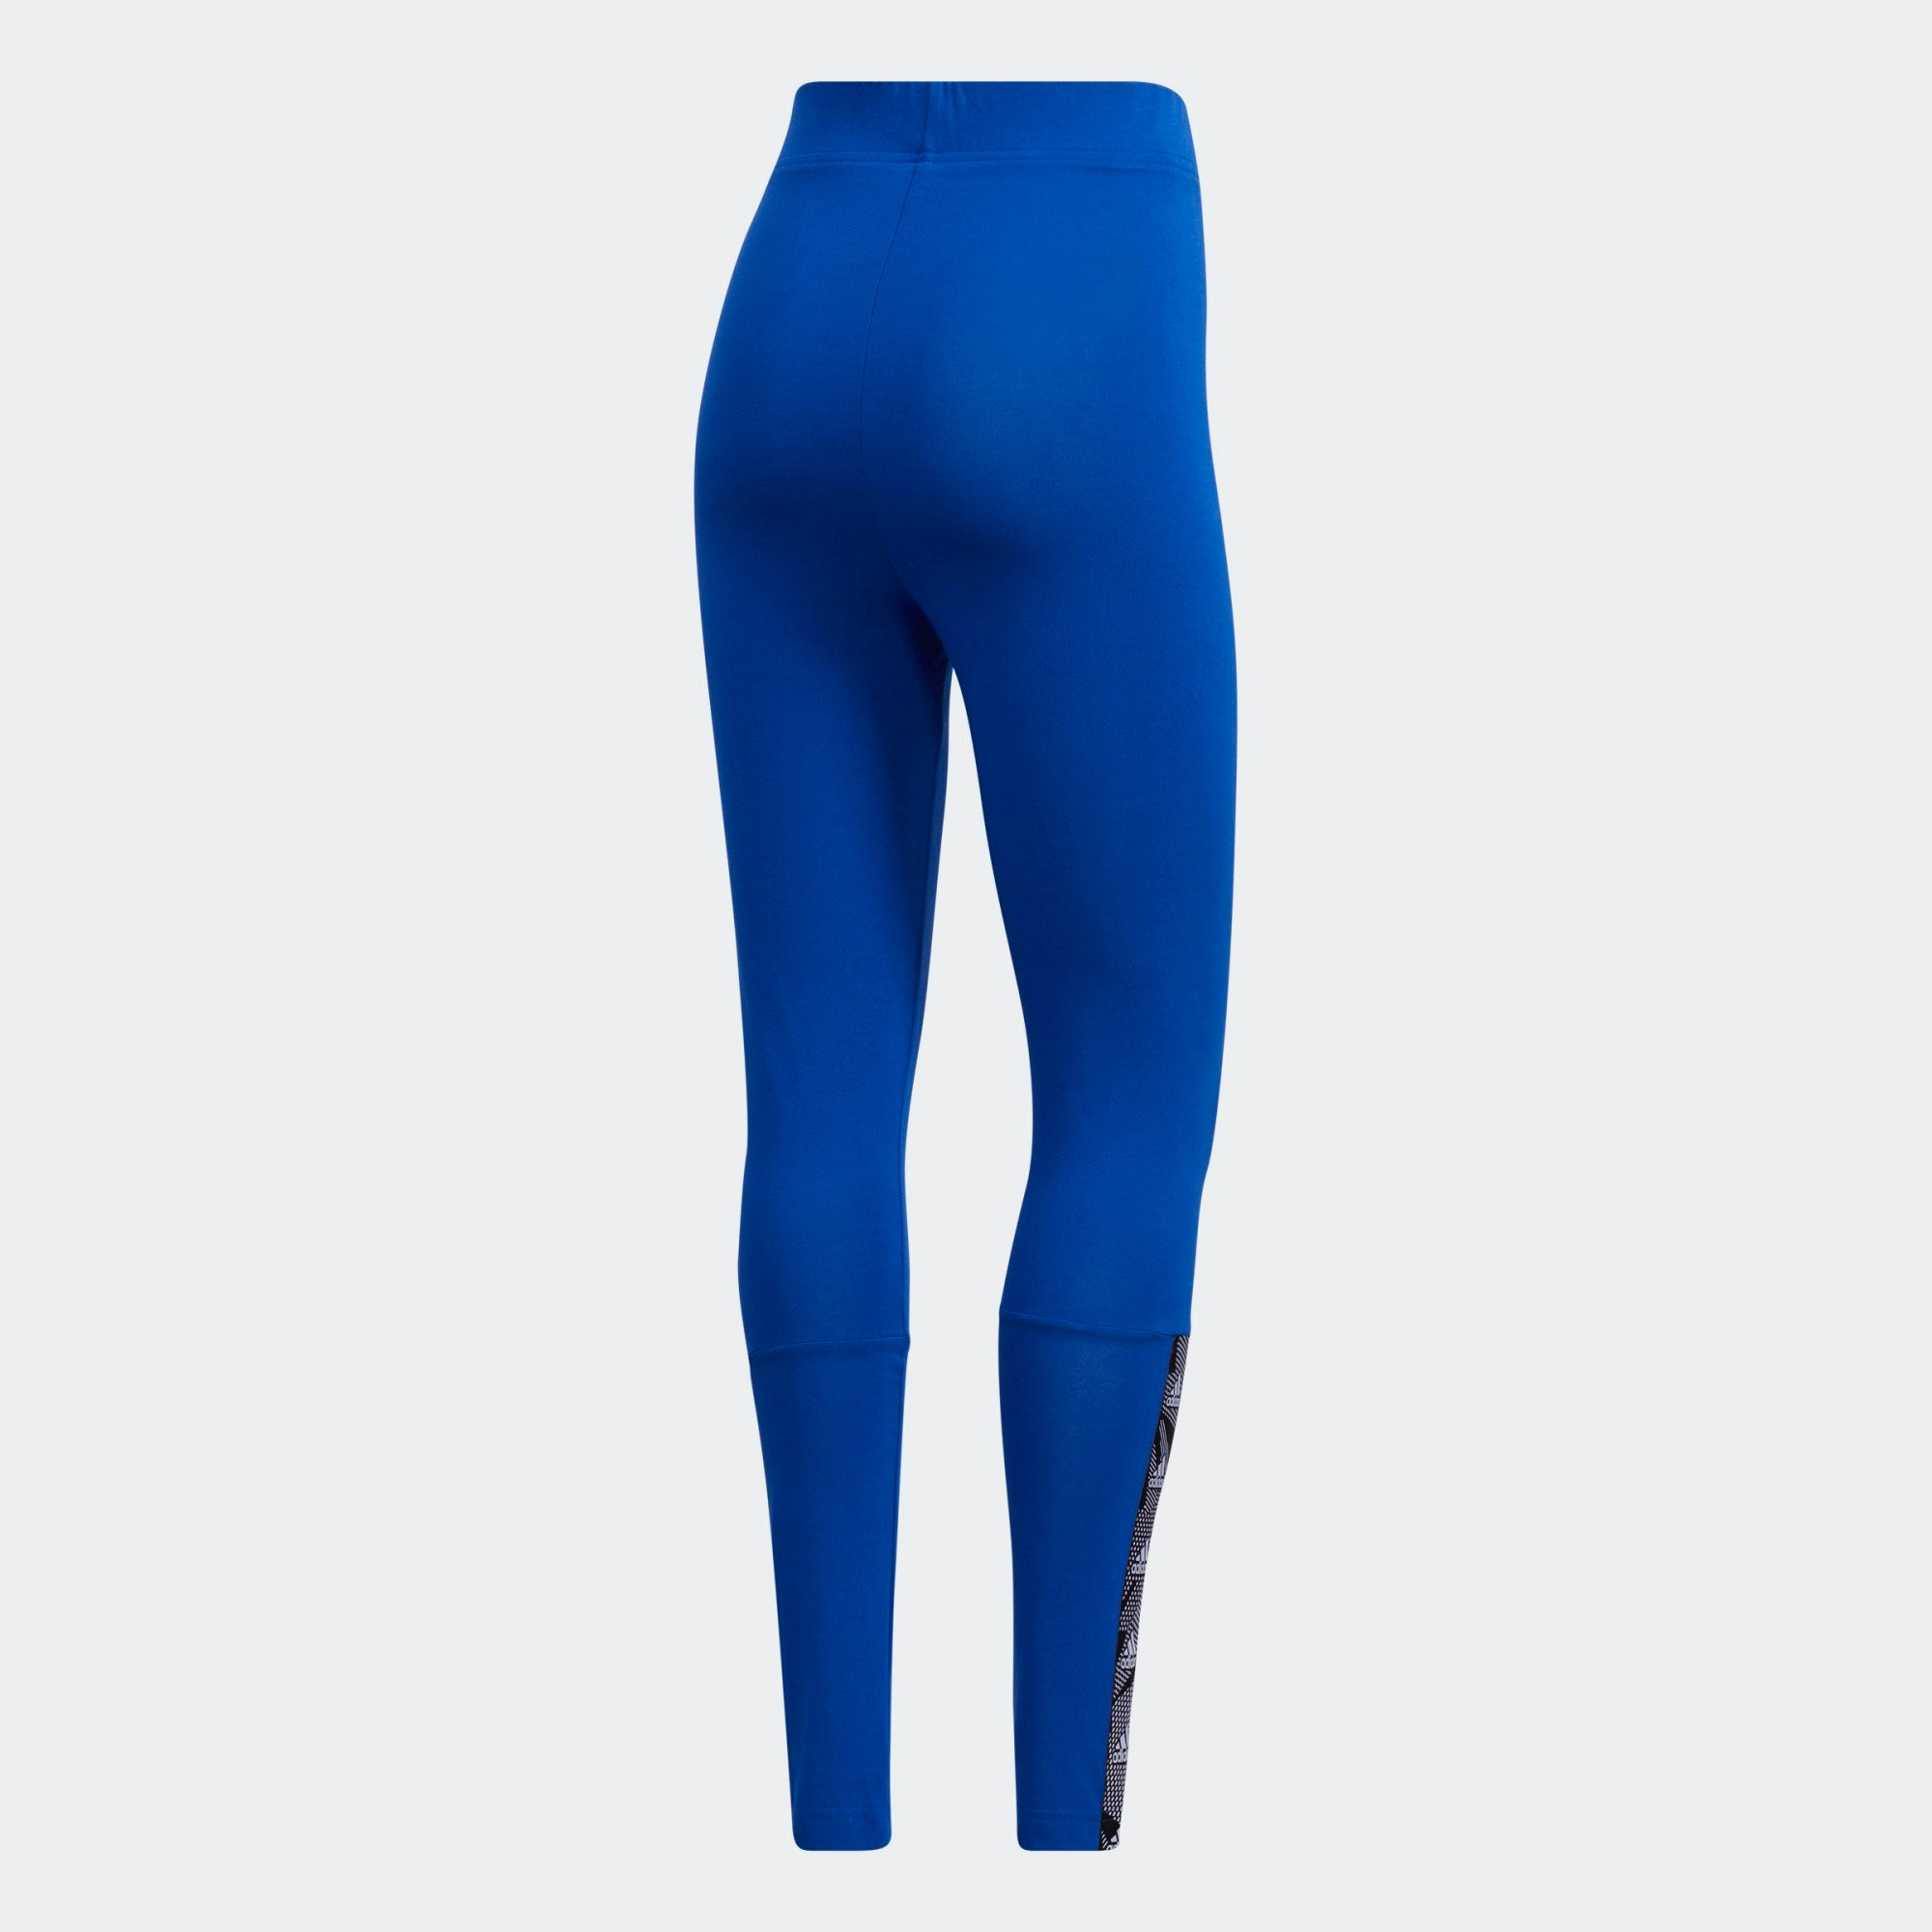 Adidas Women's High-Rise Tights